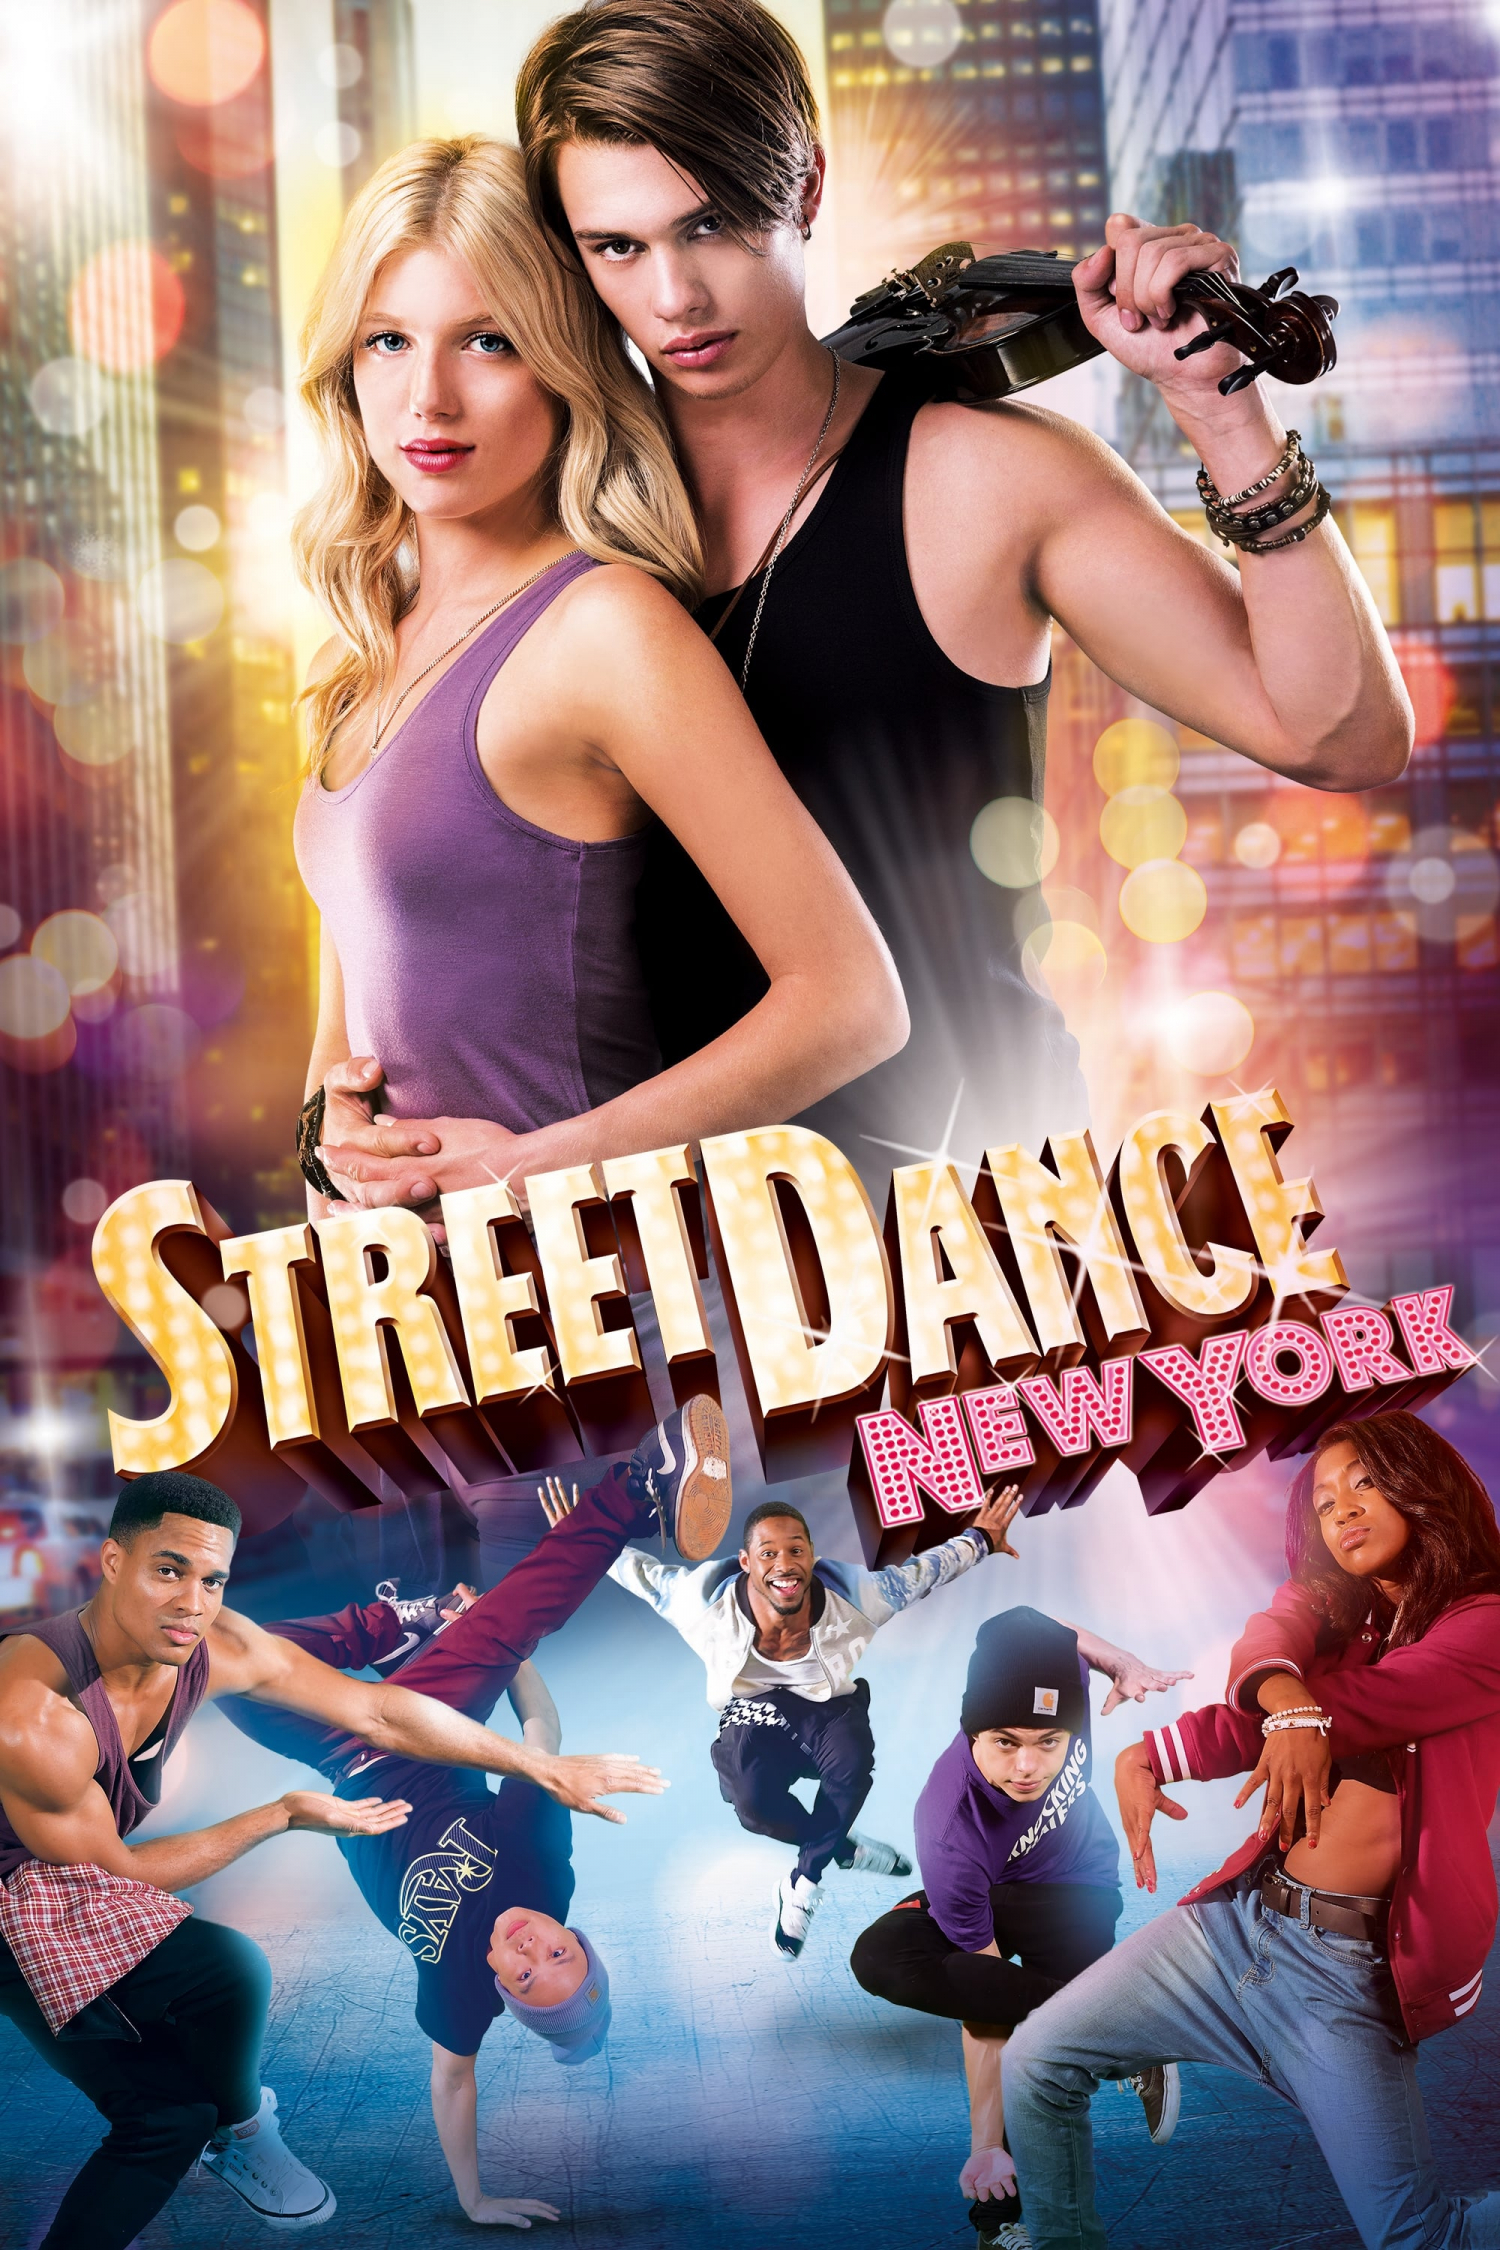 Review: High Strung Free Dance will win your heart | The